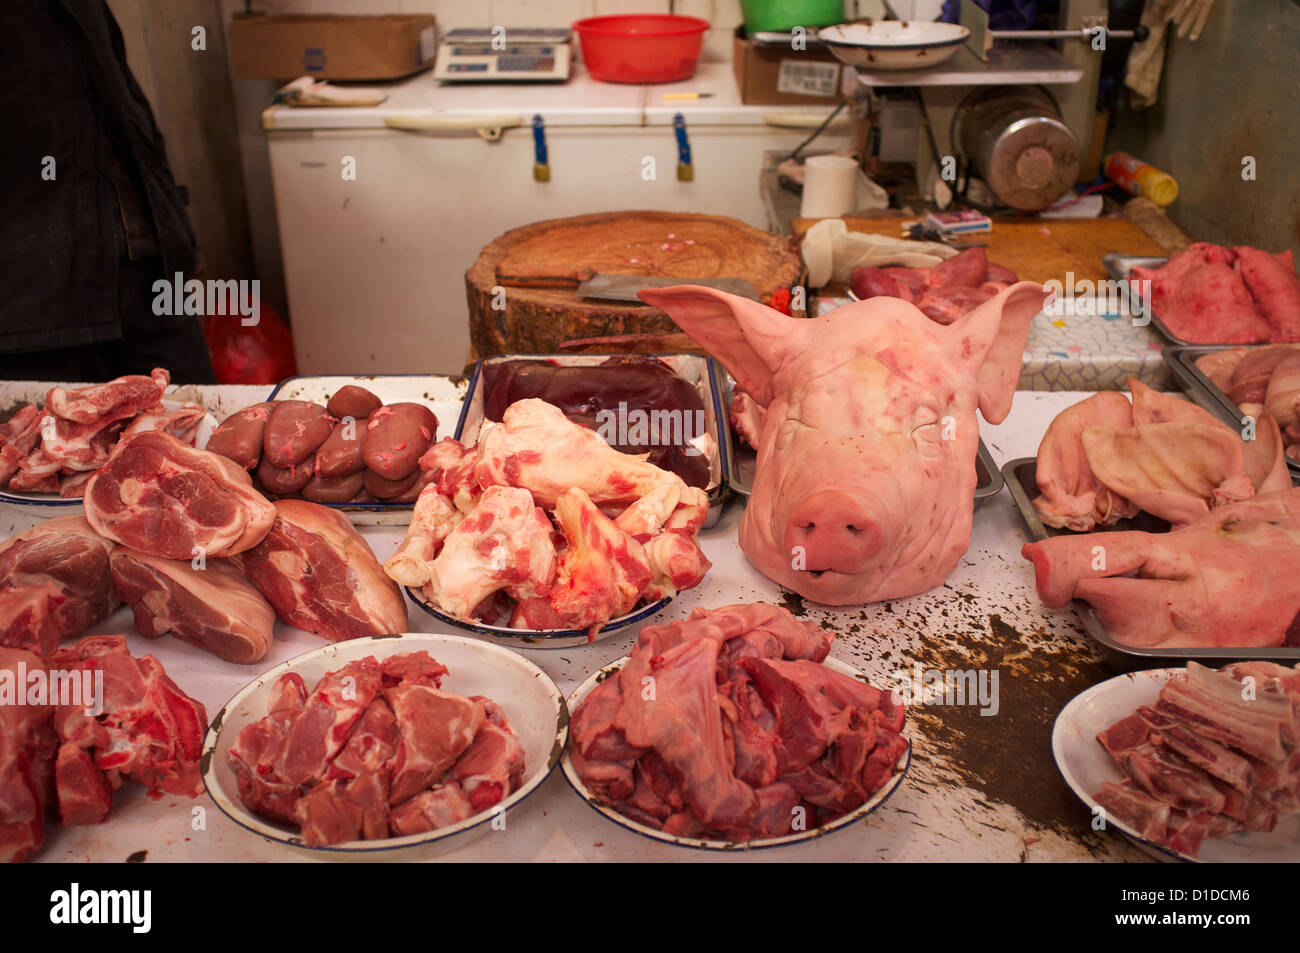 Pig's heads are one sale along with other parts of pork ...